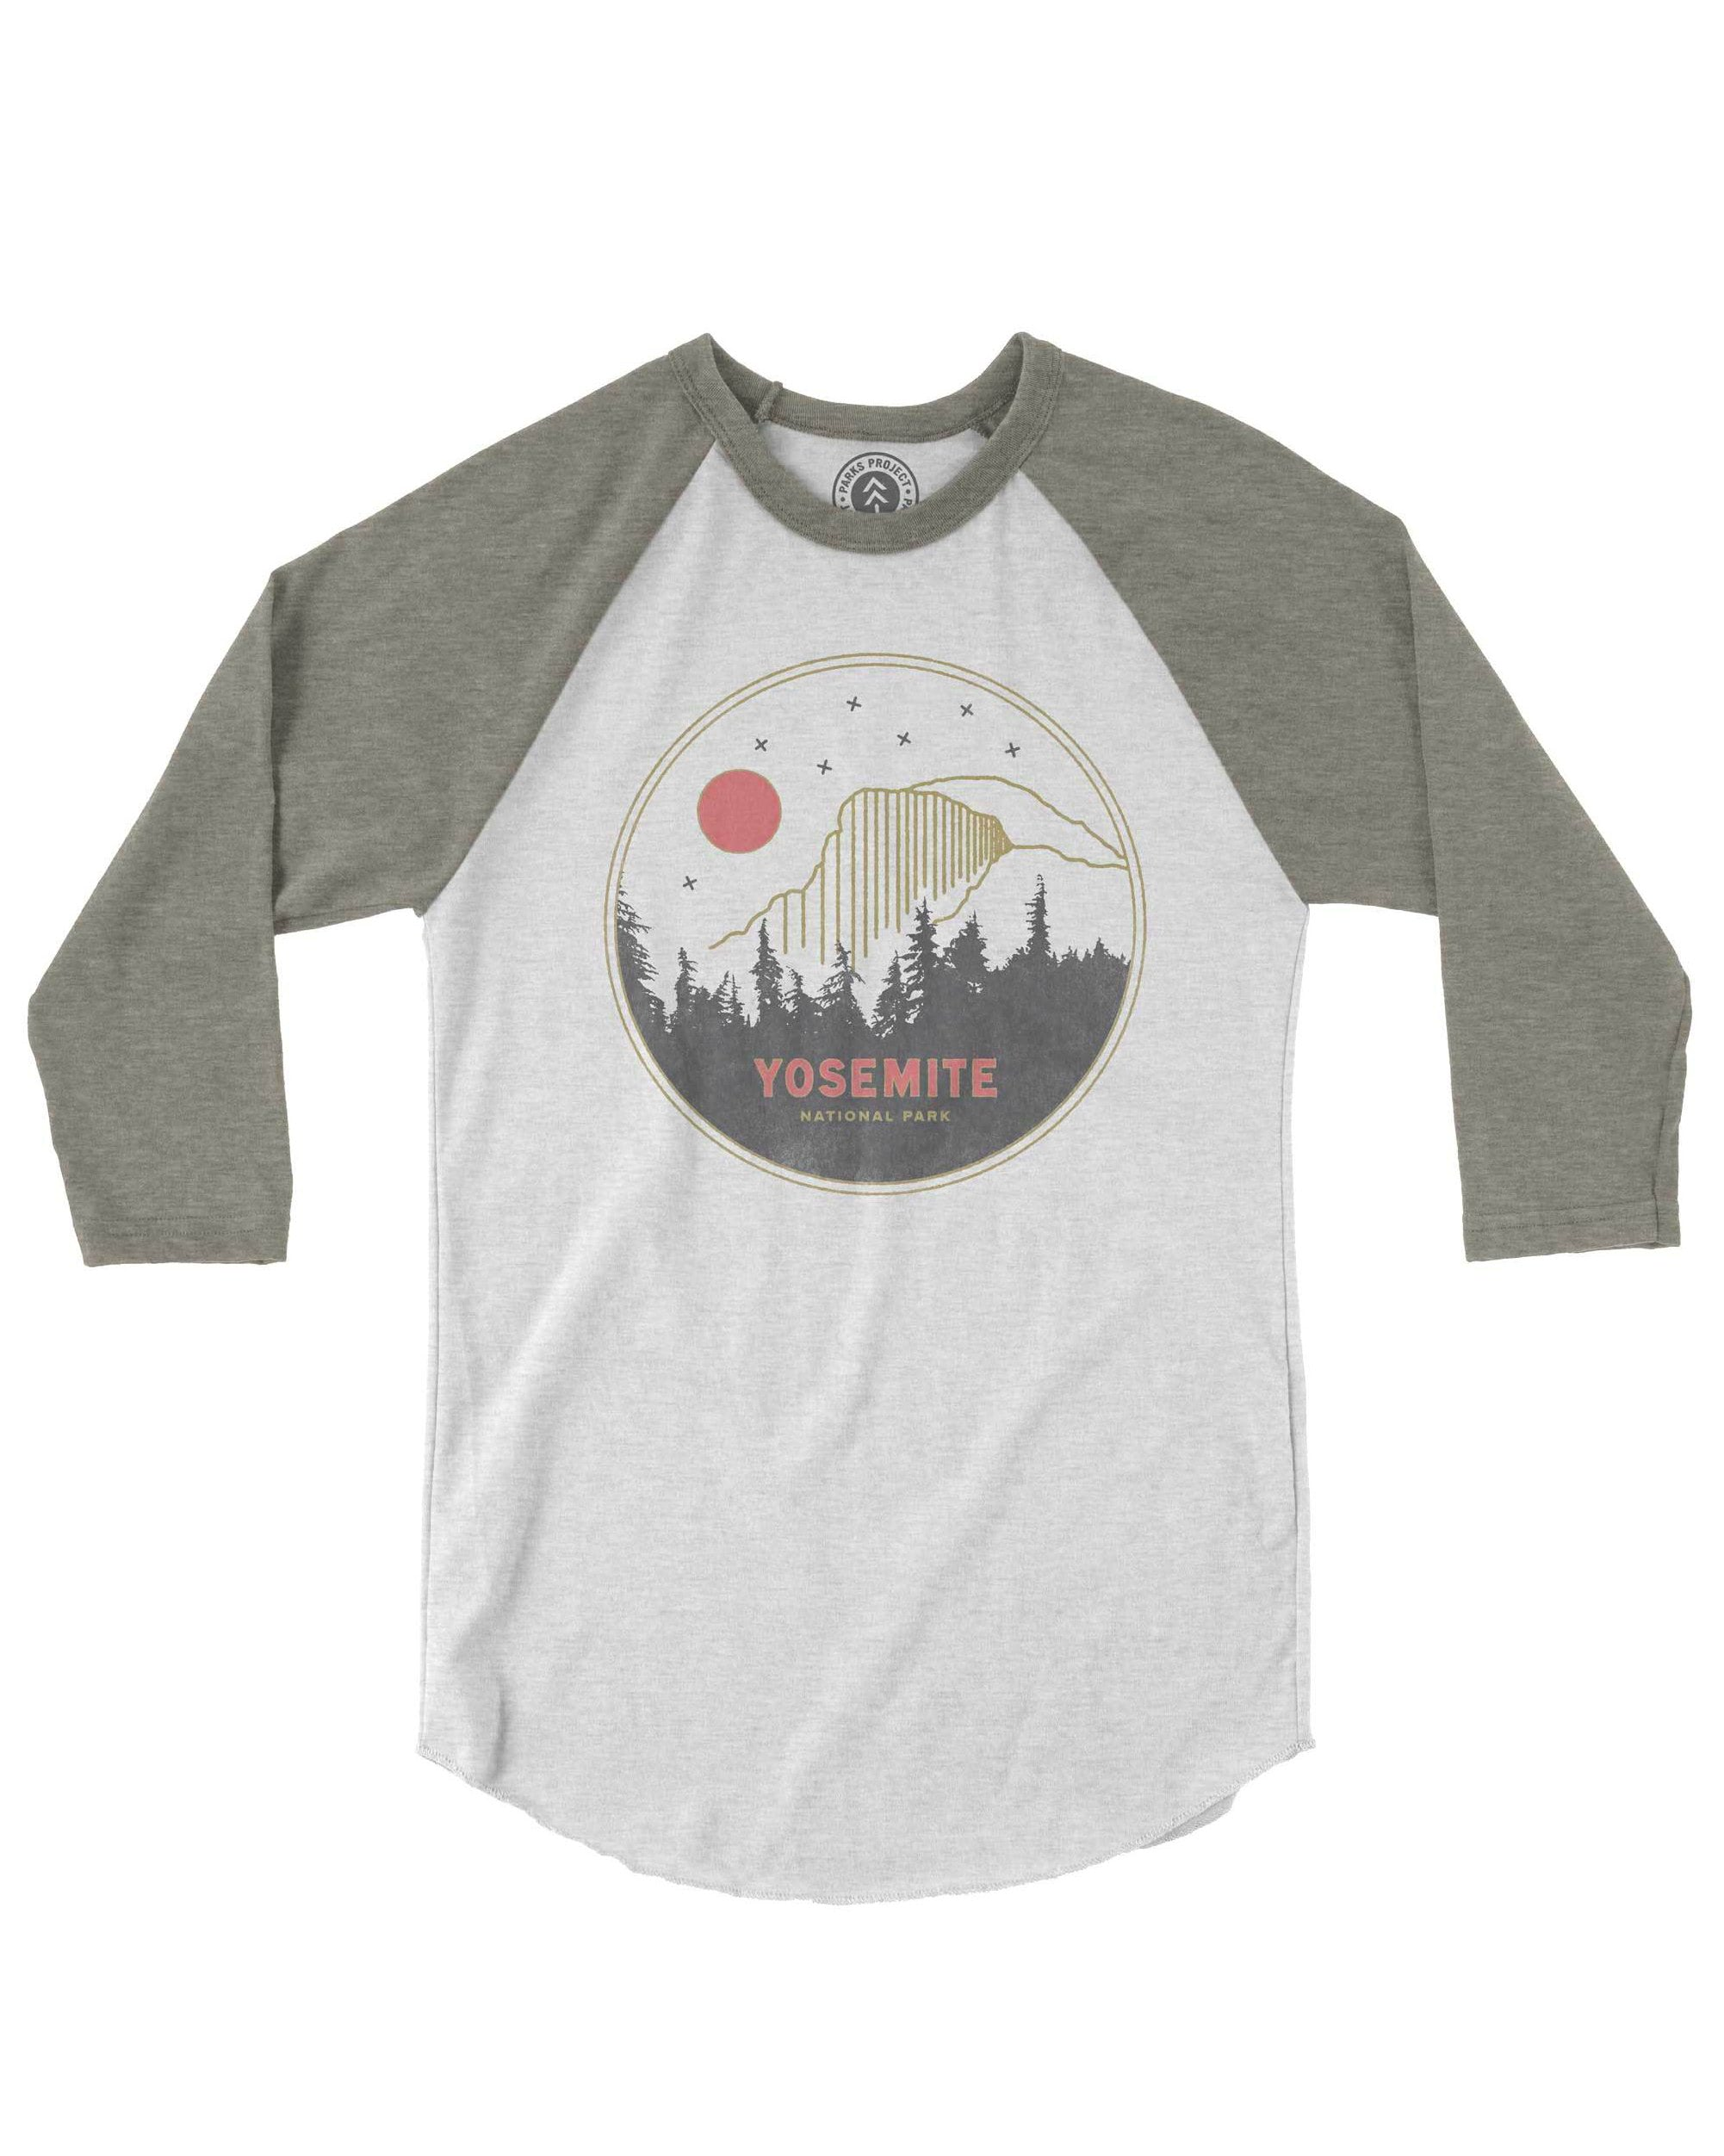 Holiday Gift Guide for National Park Lovers - Yosemite Raglan